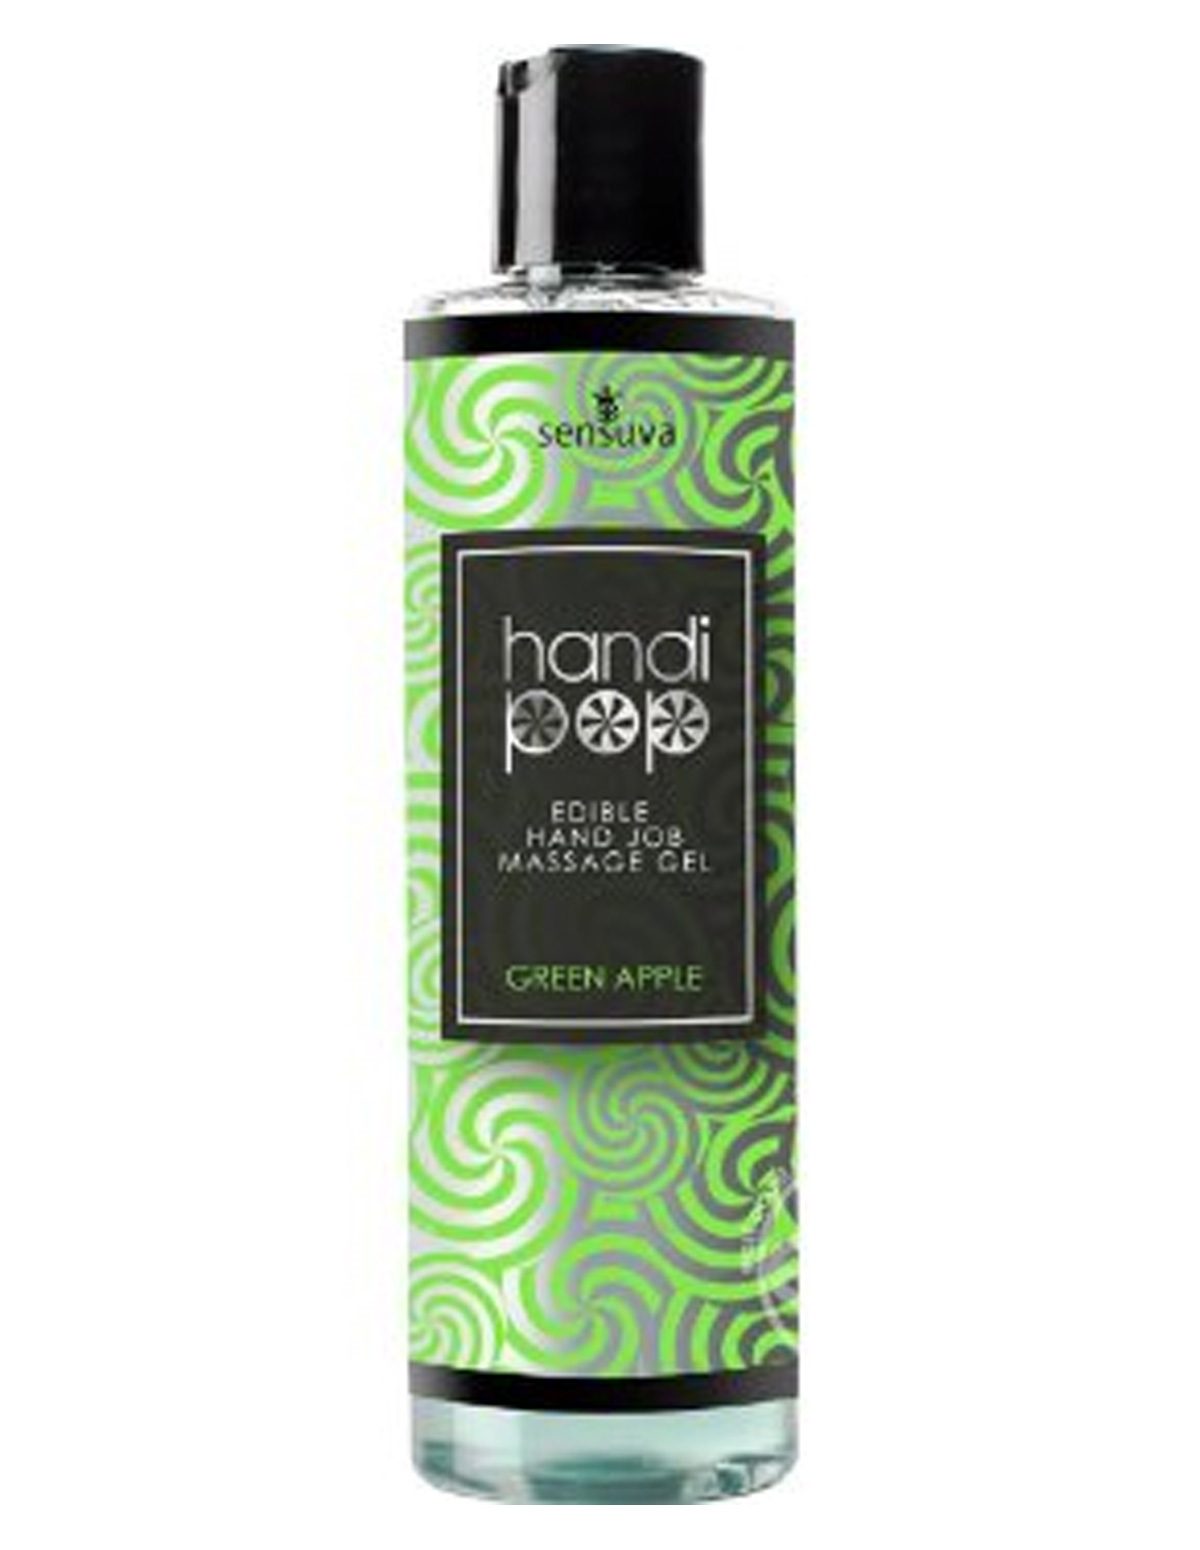 Handipop Handjob Gel - Green Apple